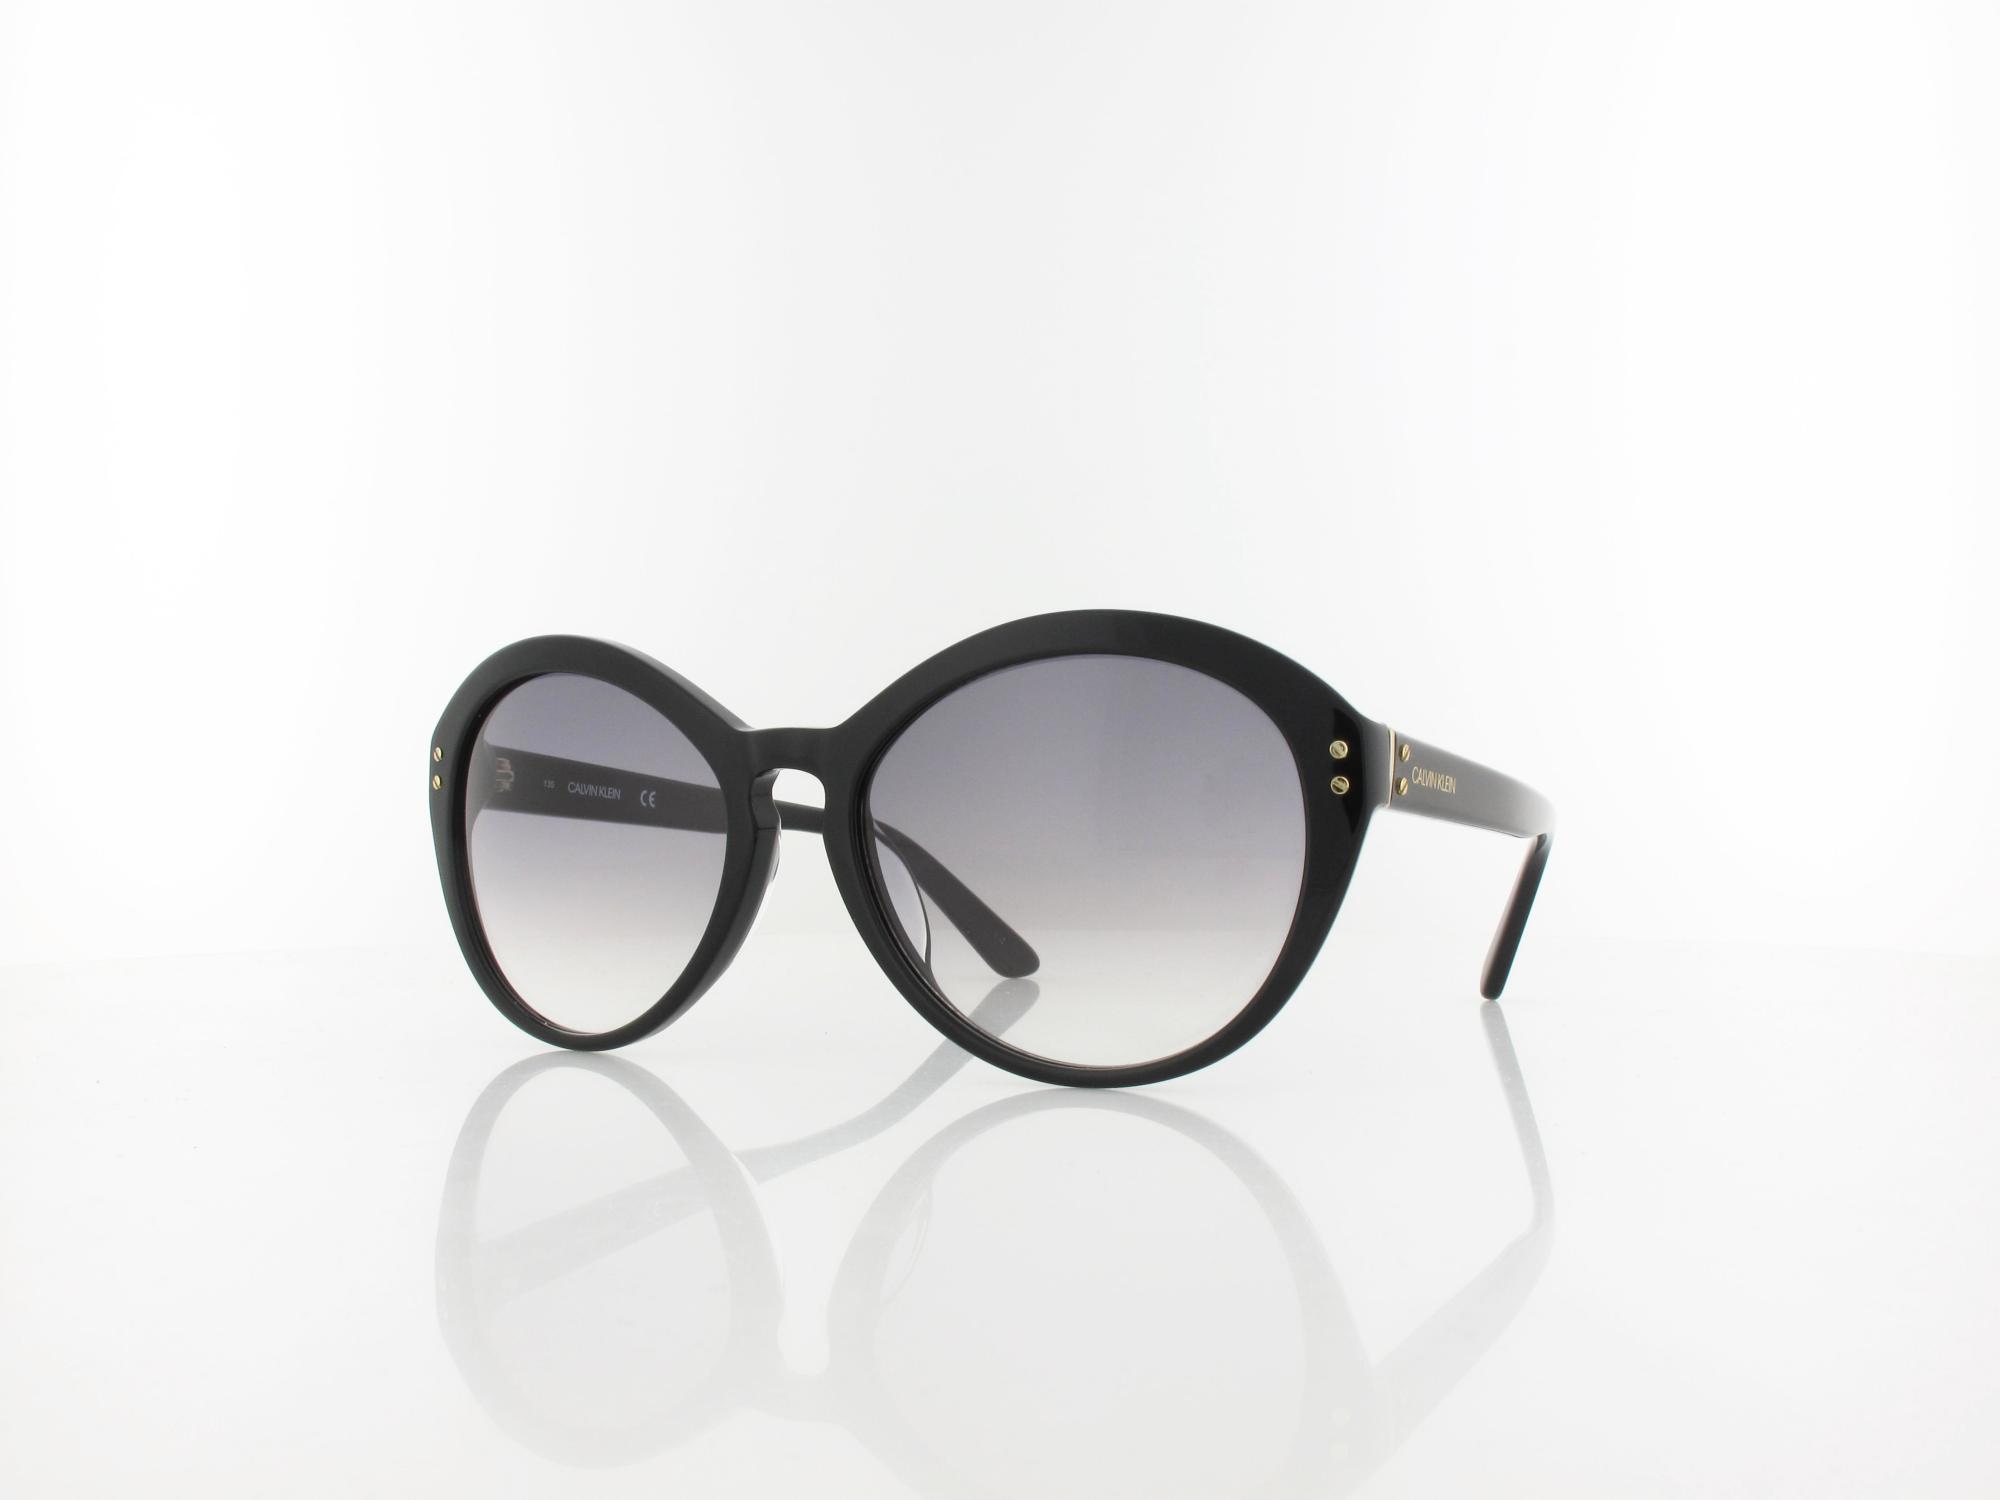 Calvin Klein | CK18506S 001 57 | black / grey gradient